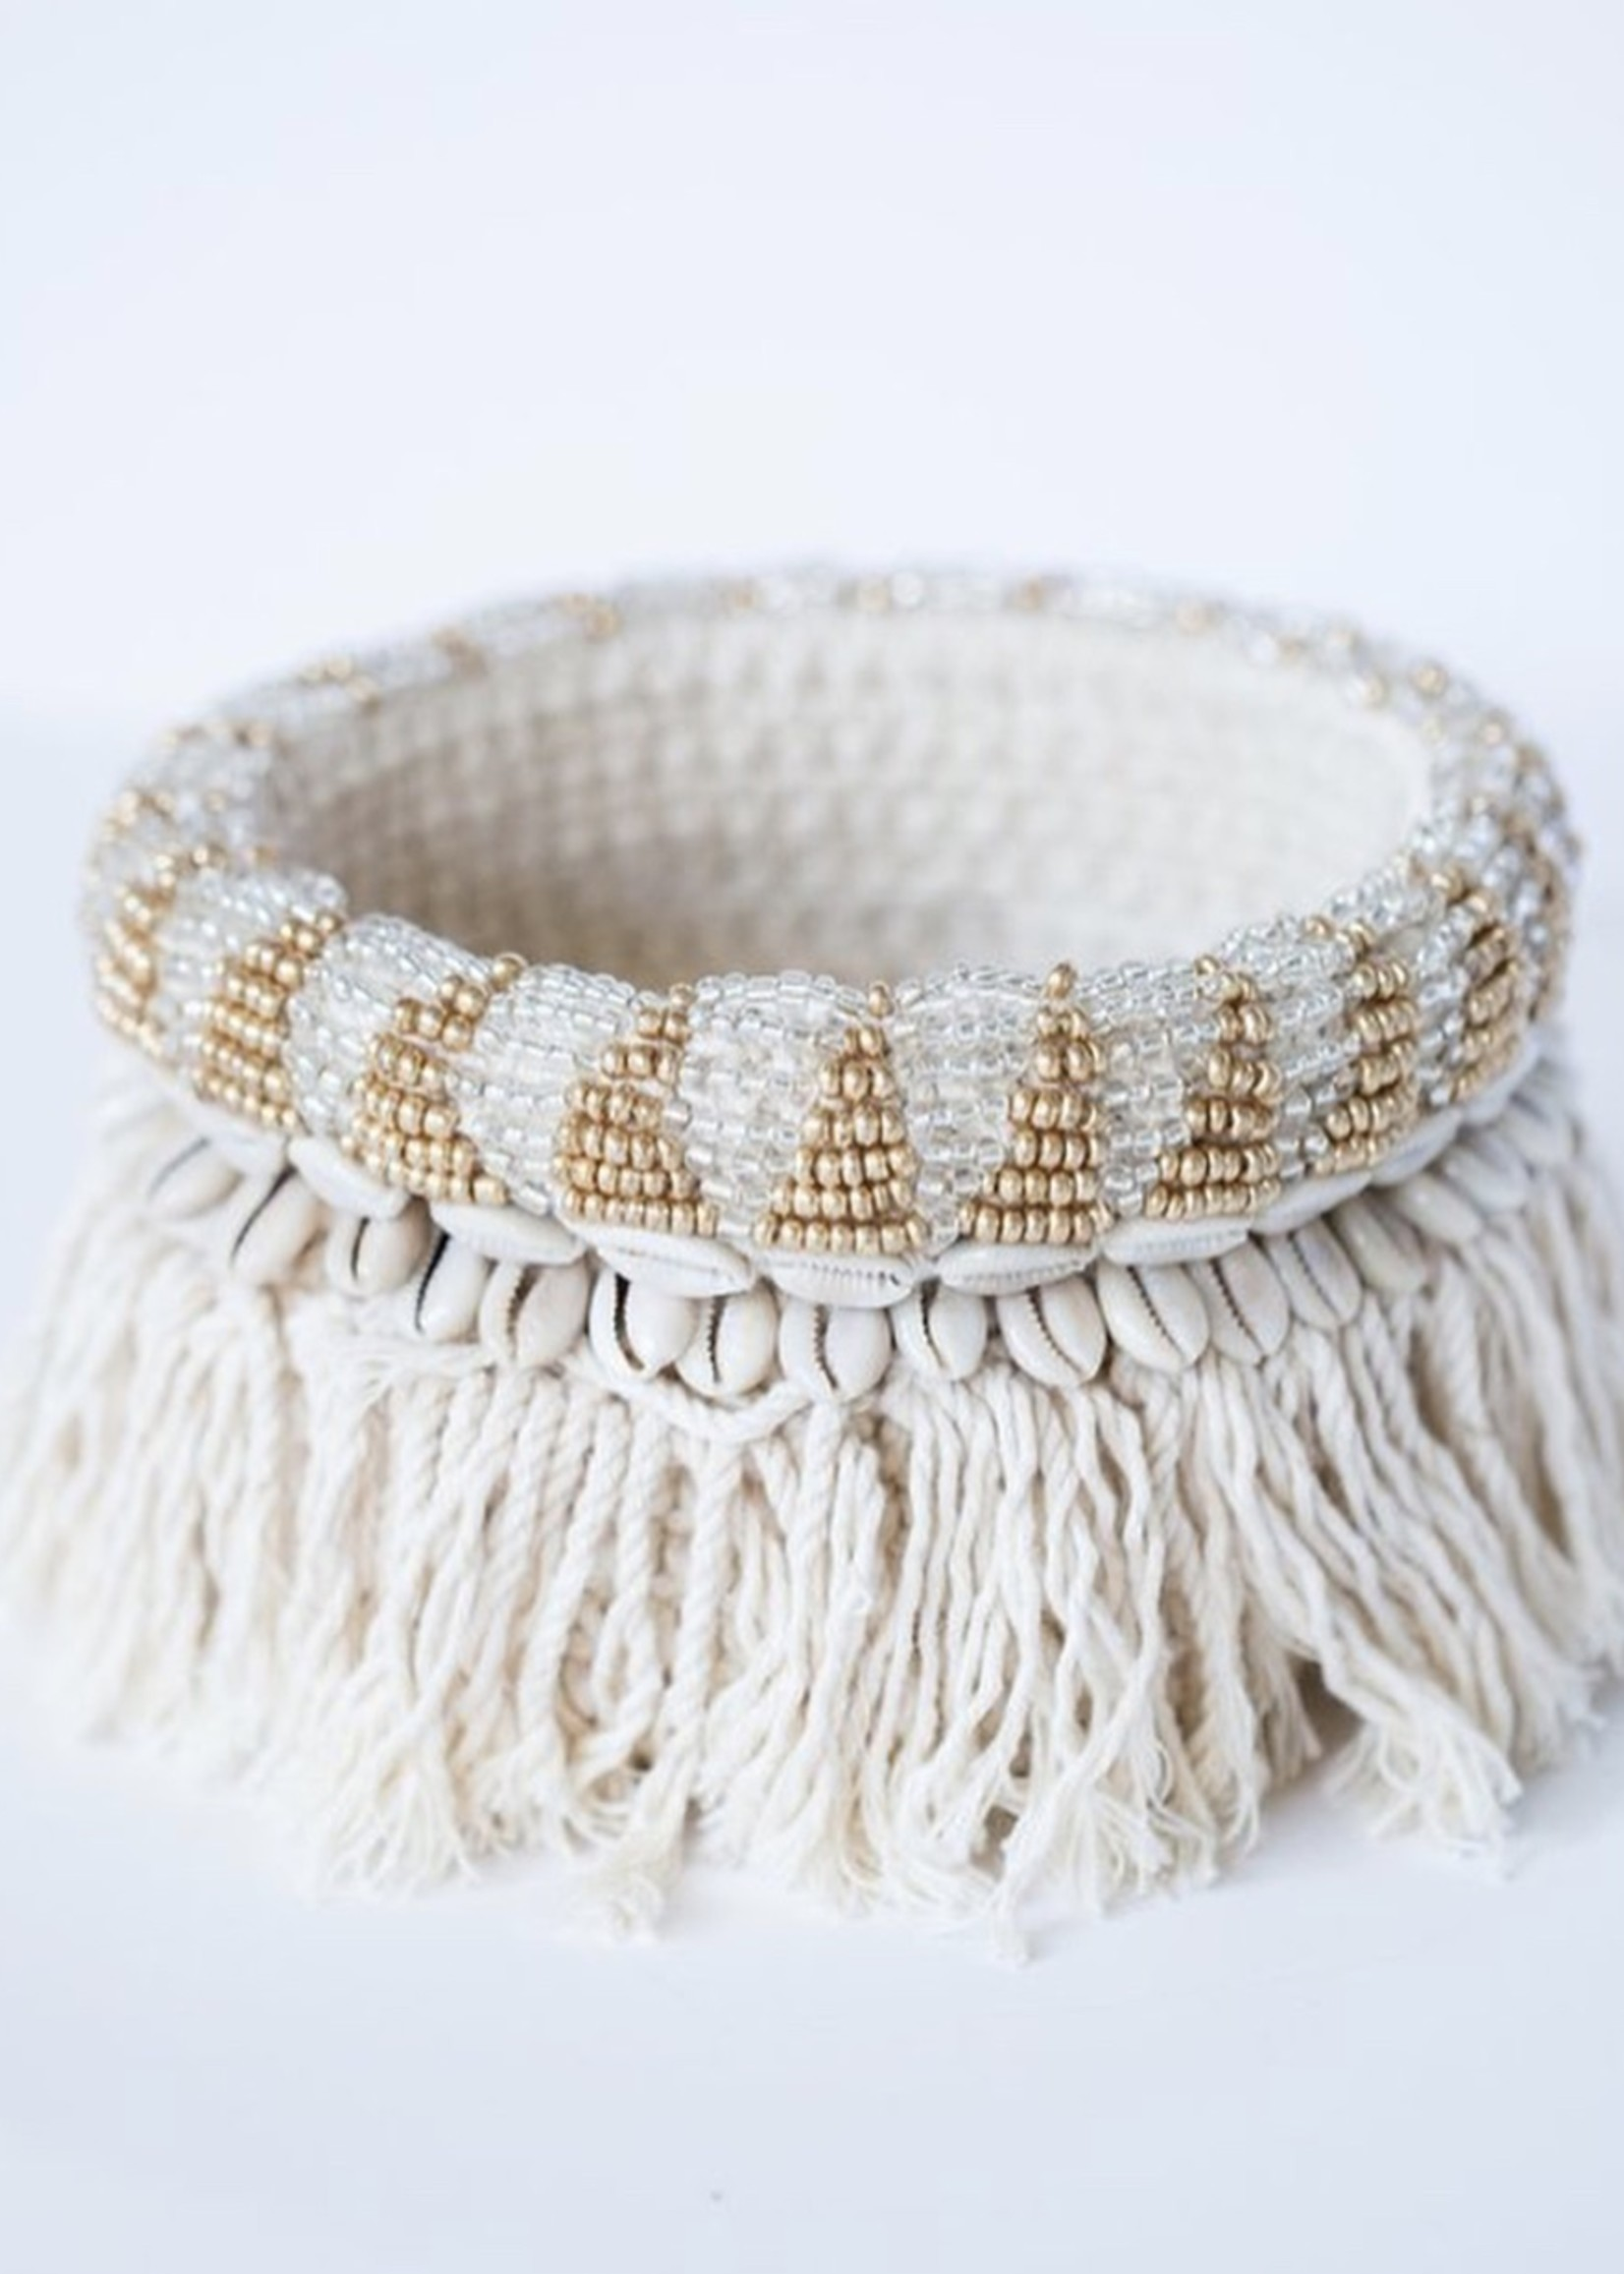 The Gold and Silver Macrame Planter - Natural Gold Silver M